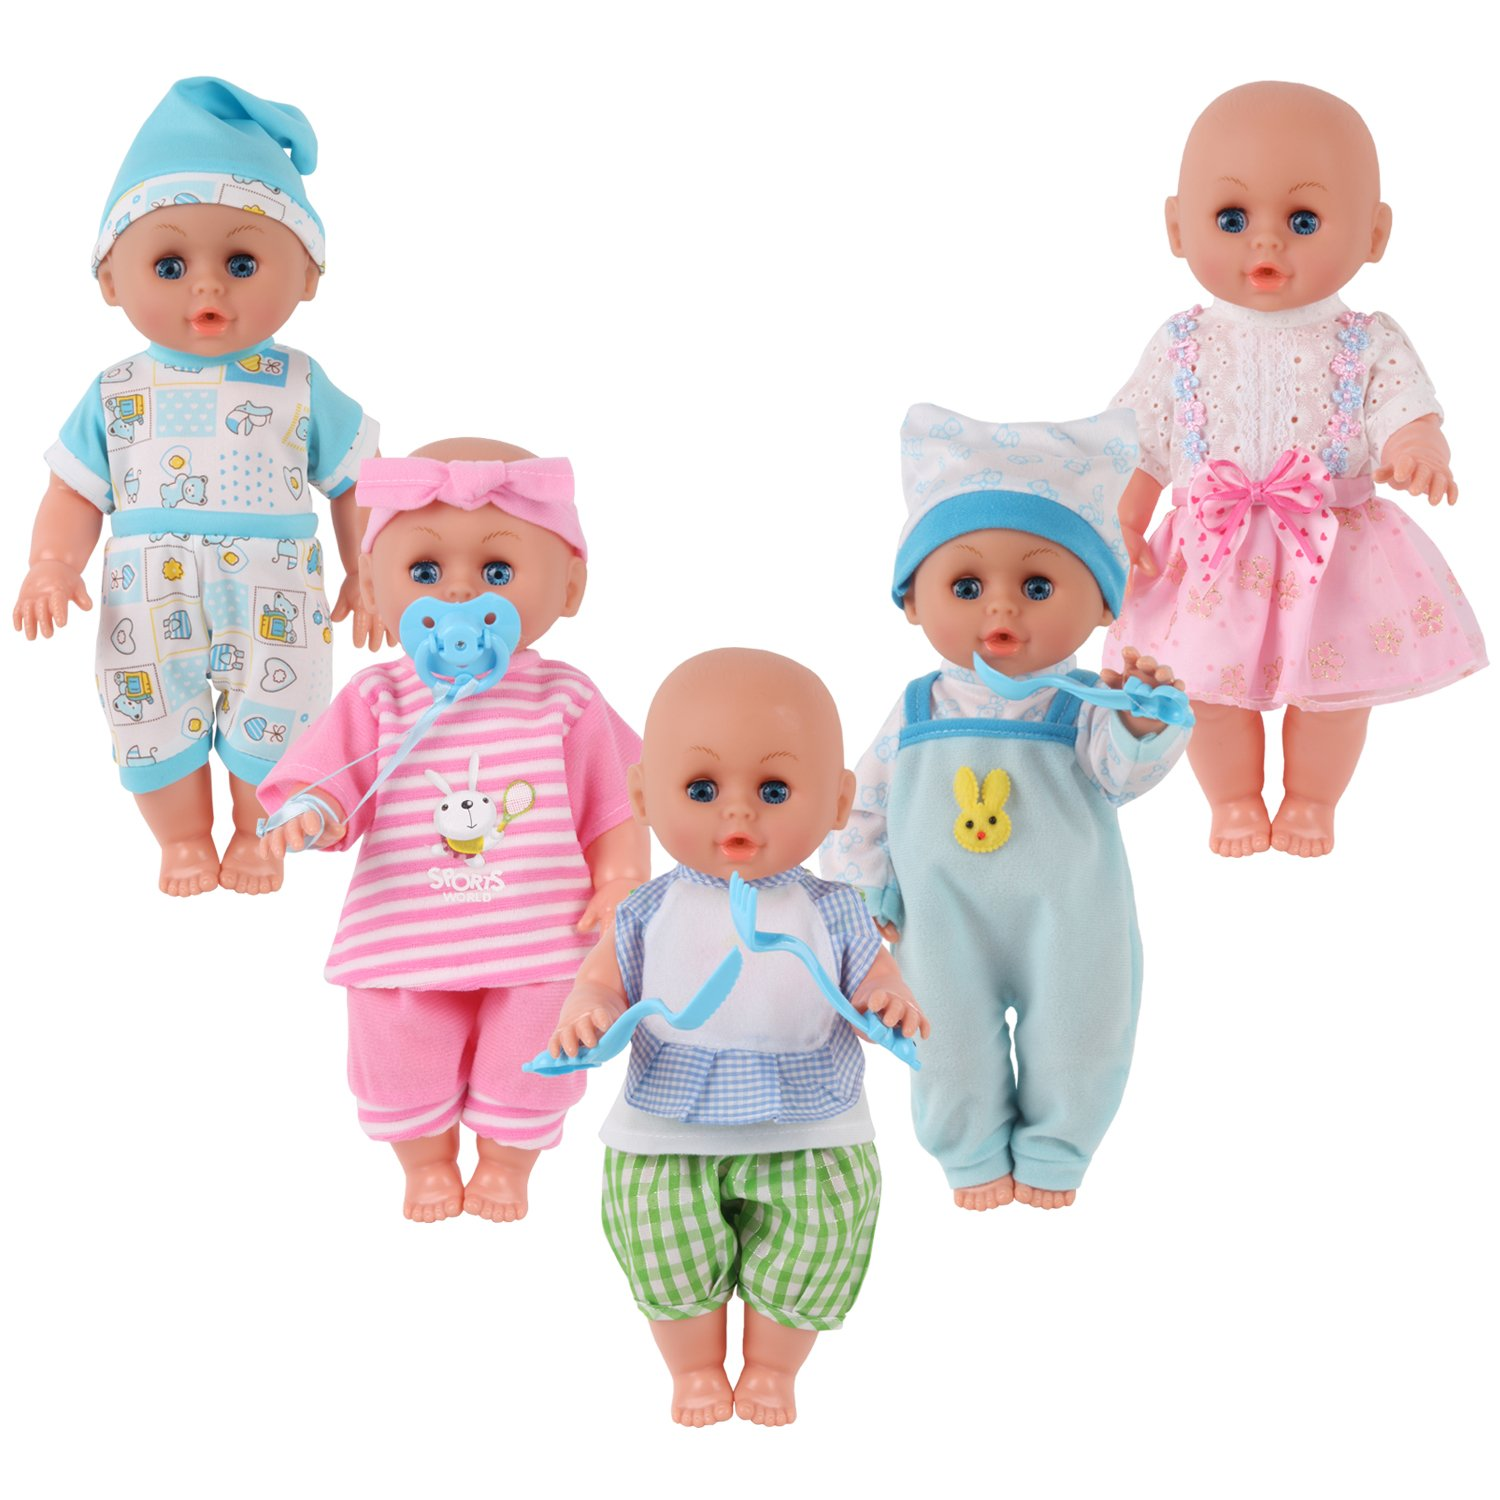 Young Buds For 11-12-13 Inch Alive American Doll Baby Doll Clothes Set of 5 Dress Costumes Gown Outfits Feeding Set with Pacifier Bib China